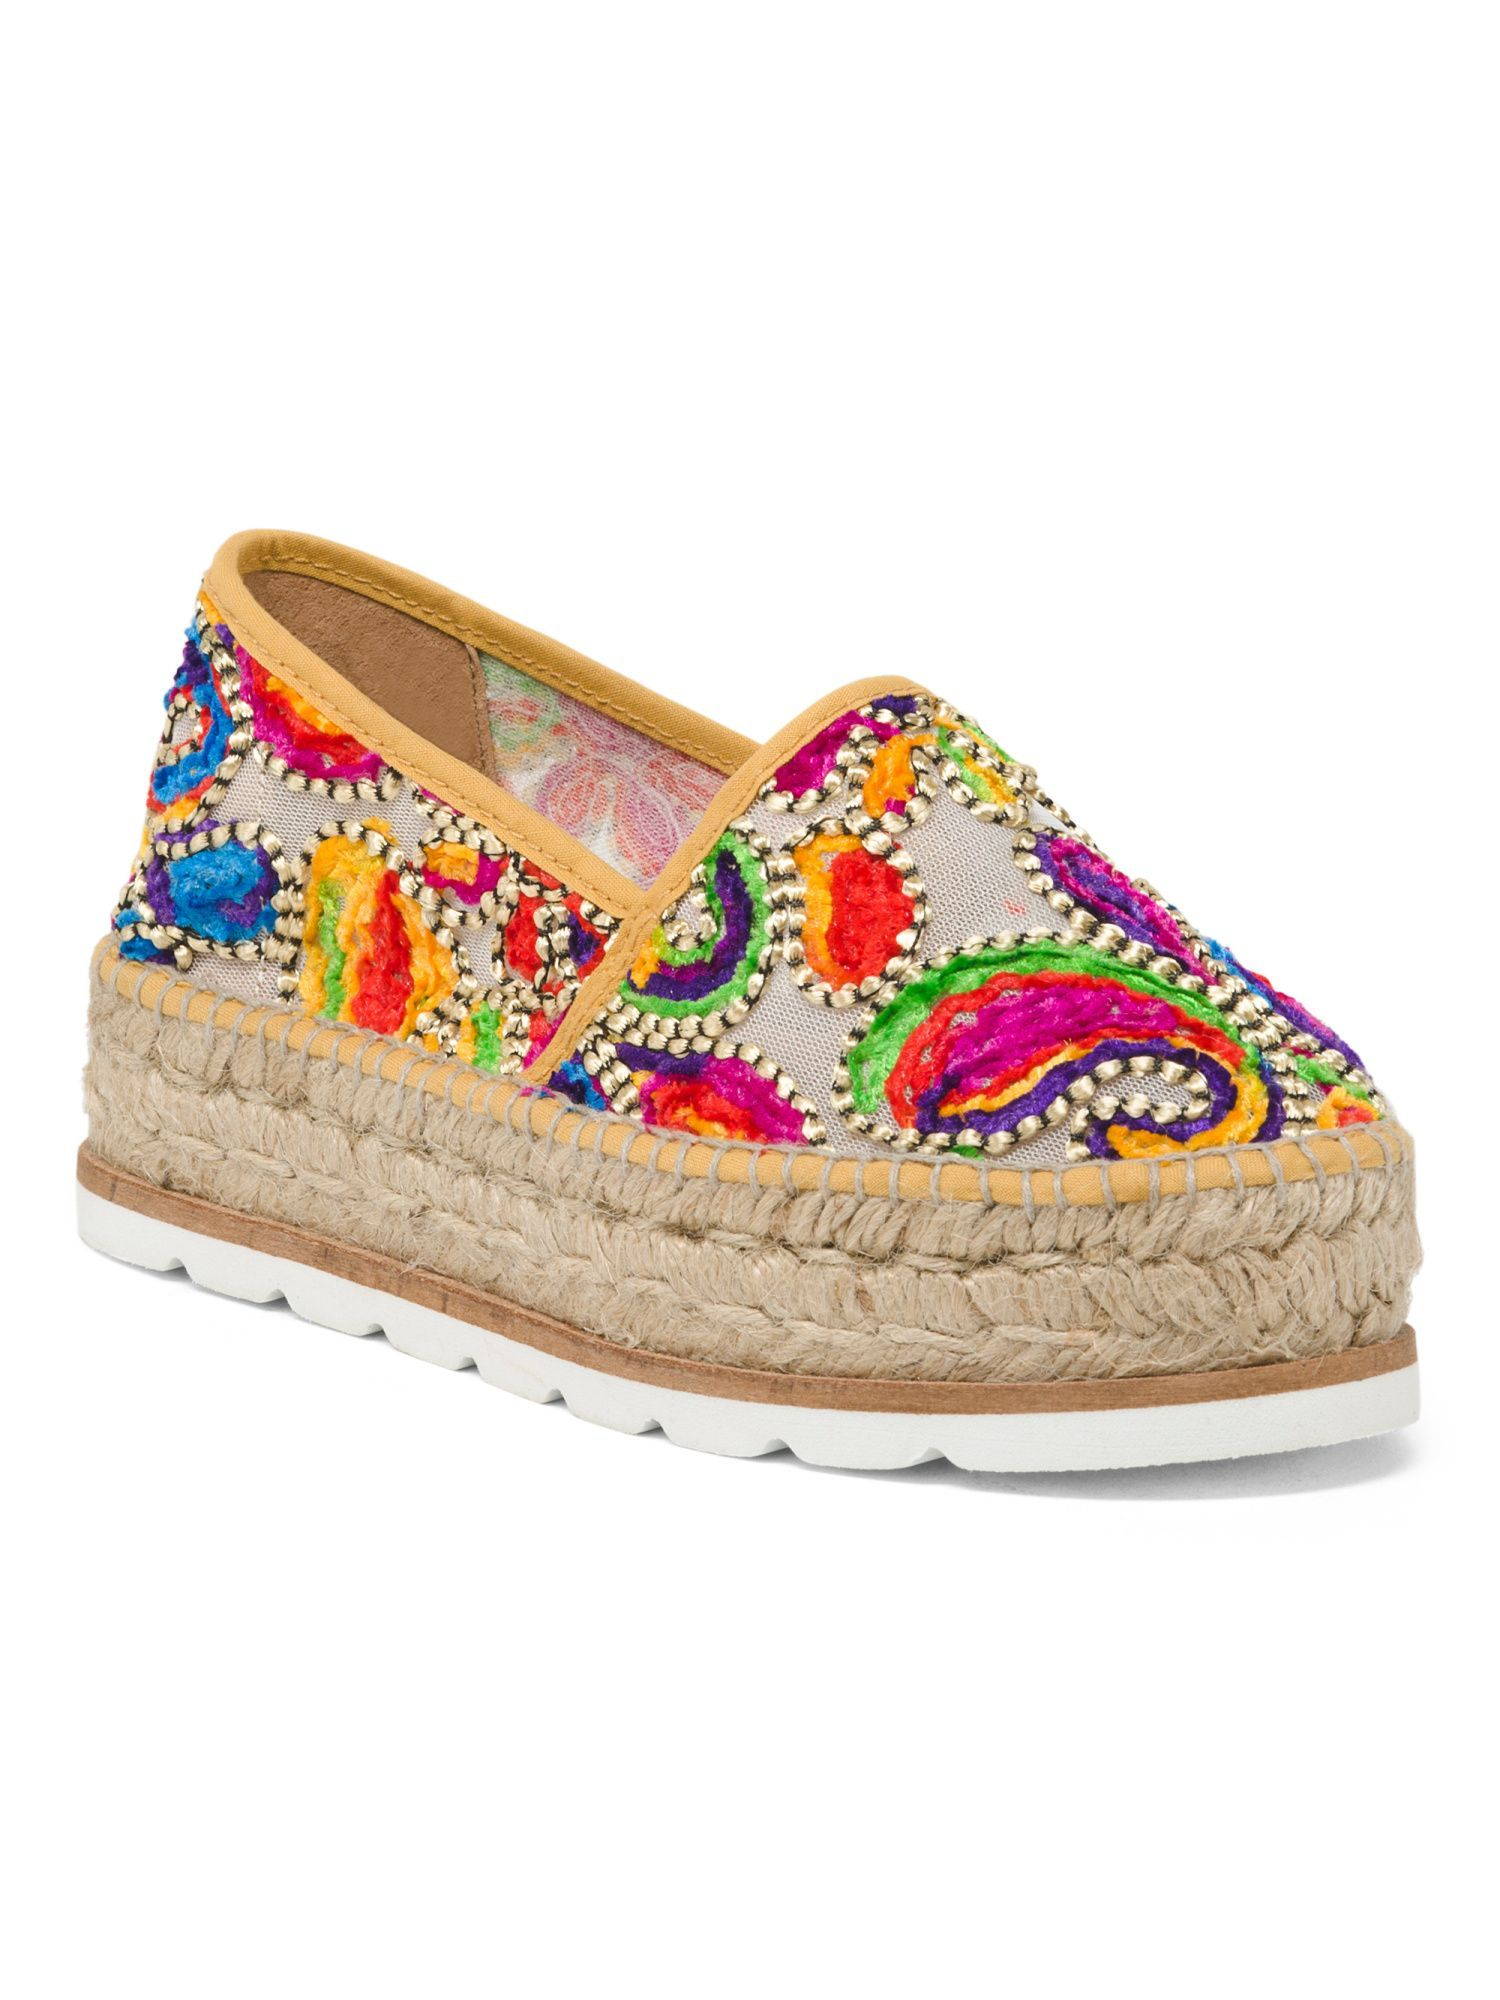 e9b525c6d Made In Spain Multi Color Embroidery Shoes Size Chart, Espadrilles, Spain,  Textiles,